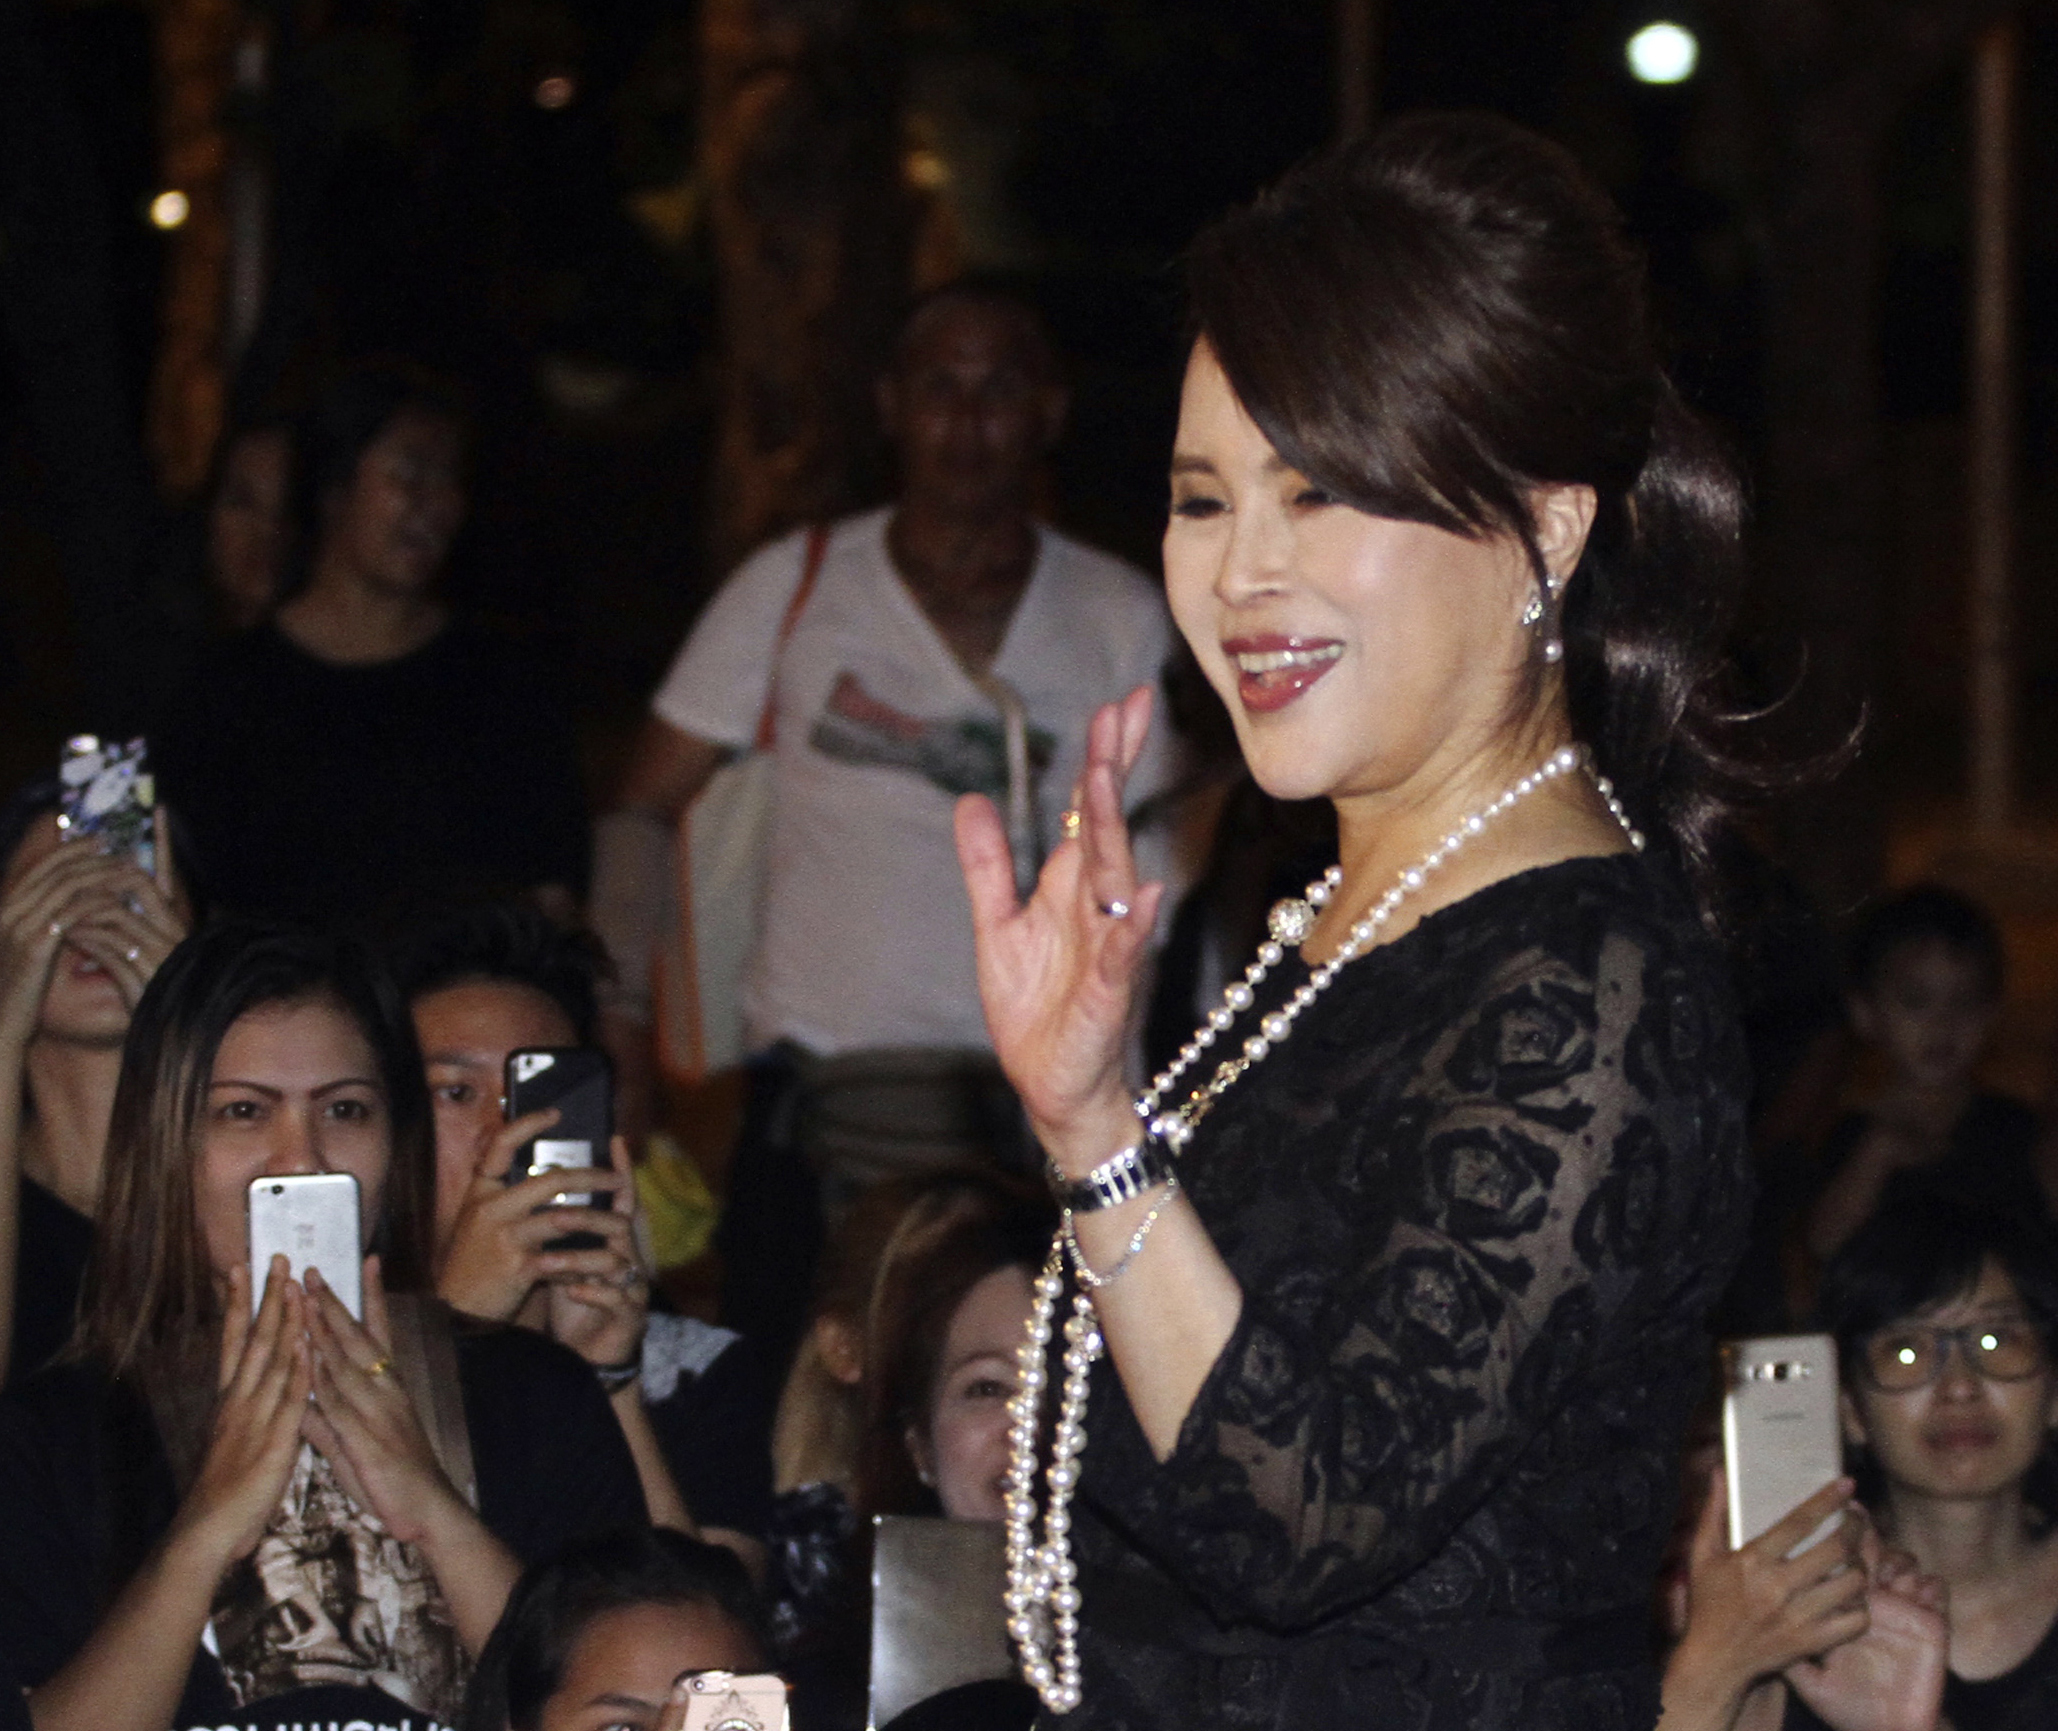 In this Oct 27, 2017, photo, Thai Princess Ubolratana Mahidol waves to Thai people outside Grand Palace in Bangkok , Thailand. The selection of the elder sister of Thailand's king as a political party nominee for prime minister has upended a tradition of the palace playing no public role in politics. Most but not all modern monarchies steer clear of direct involvement in electoral politics or governing. (AP Photo)